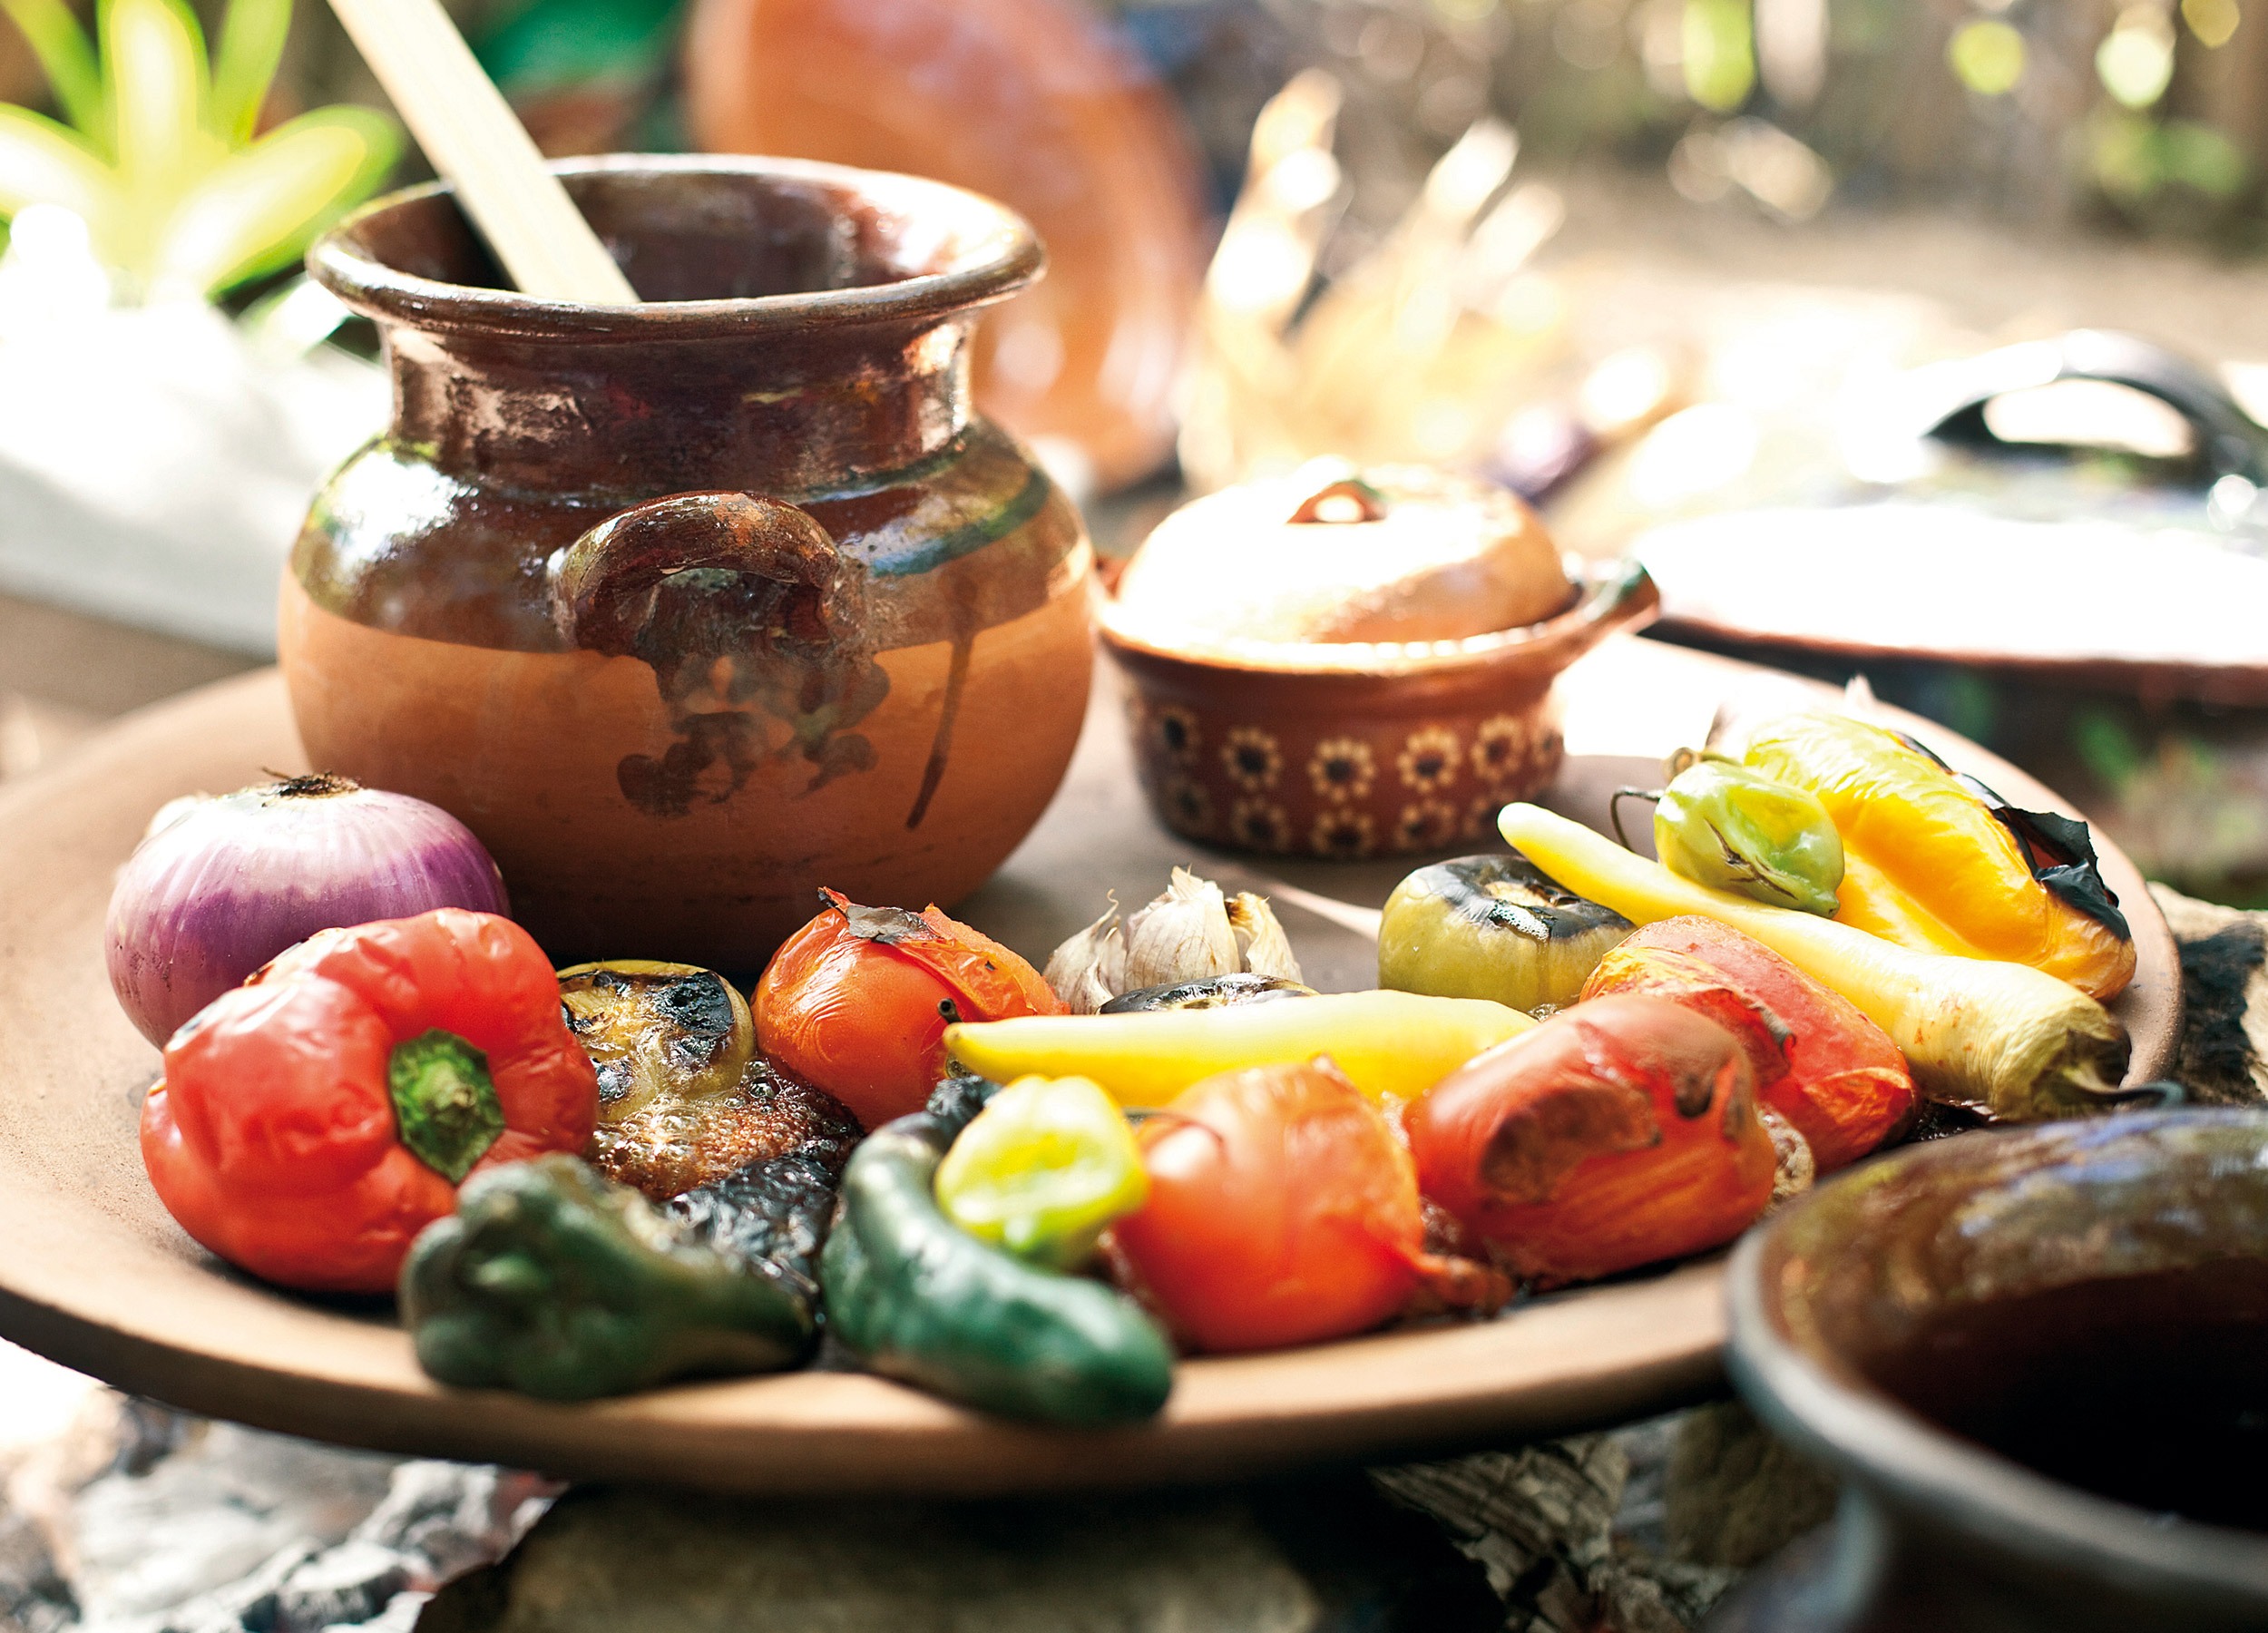 Roast vegetables and condiments in bowls on a platter, Mexico